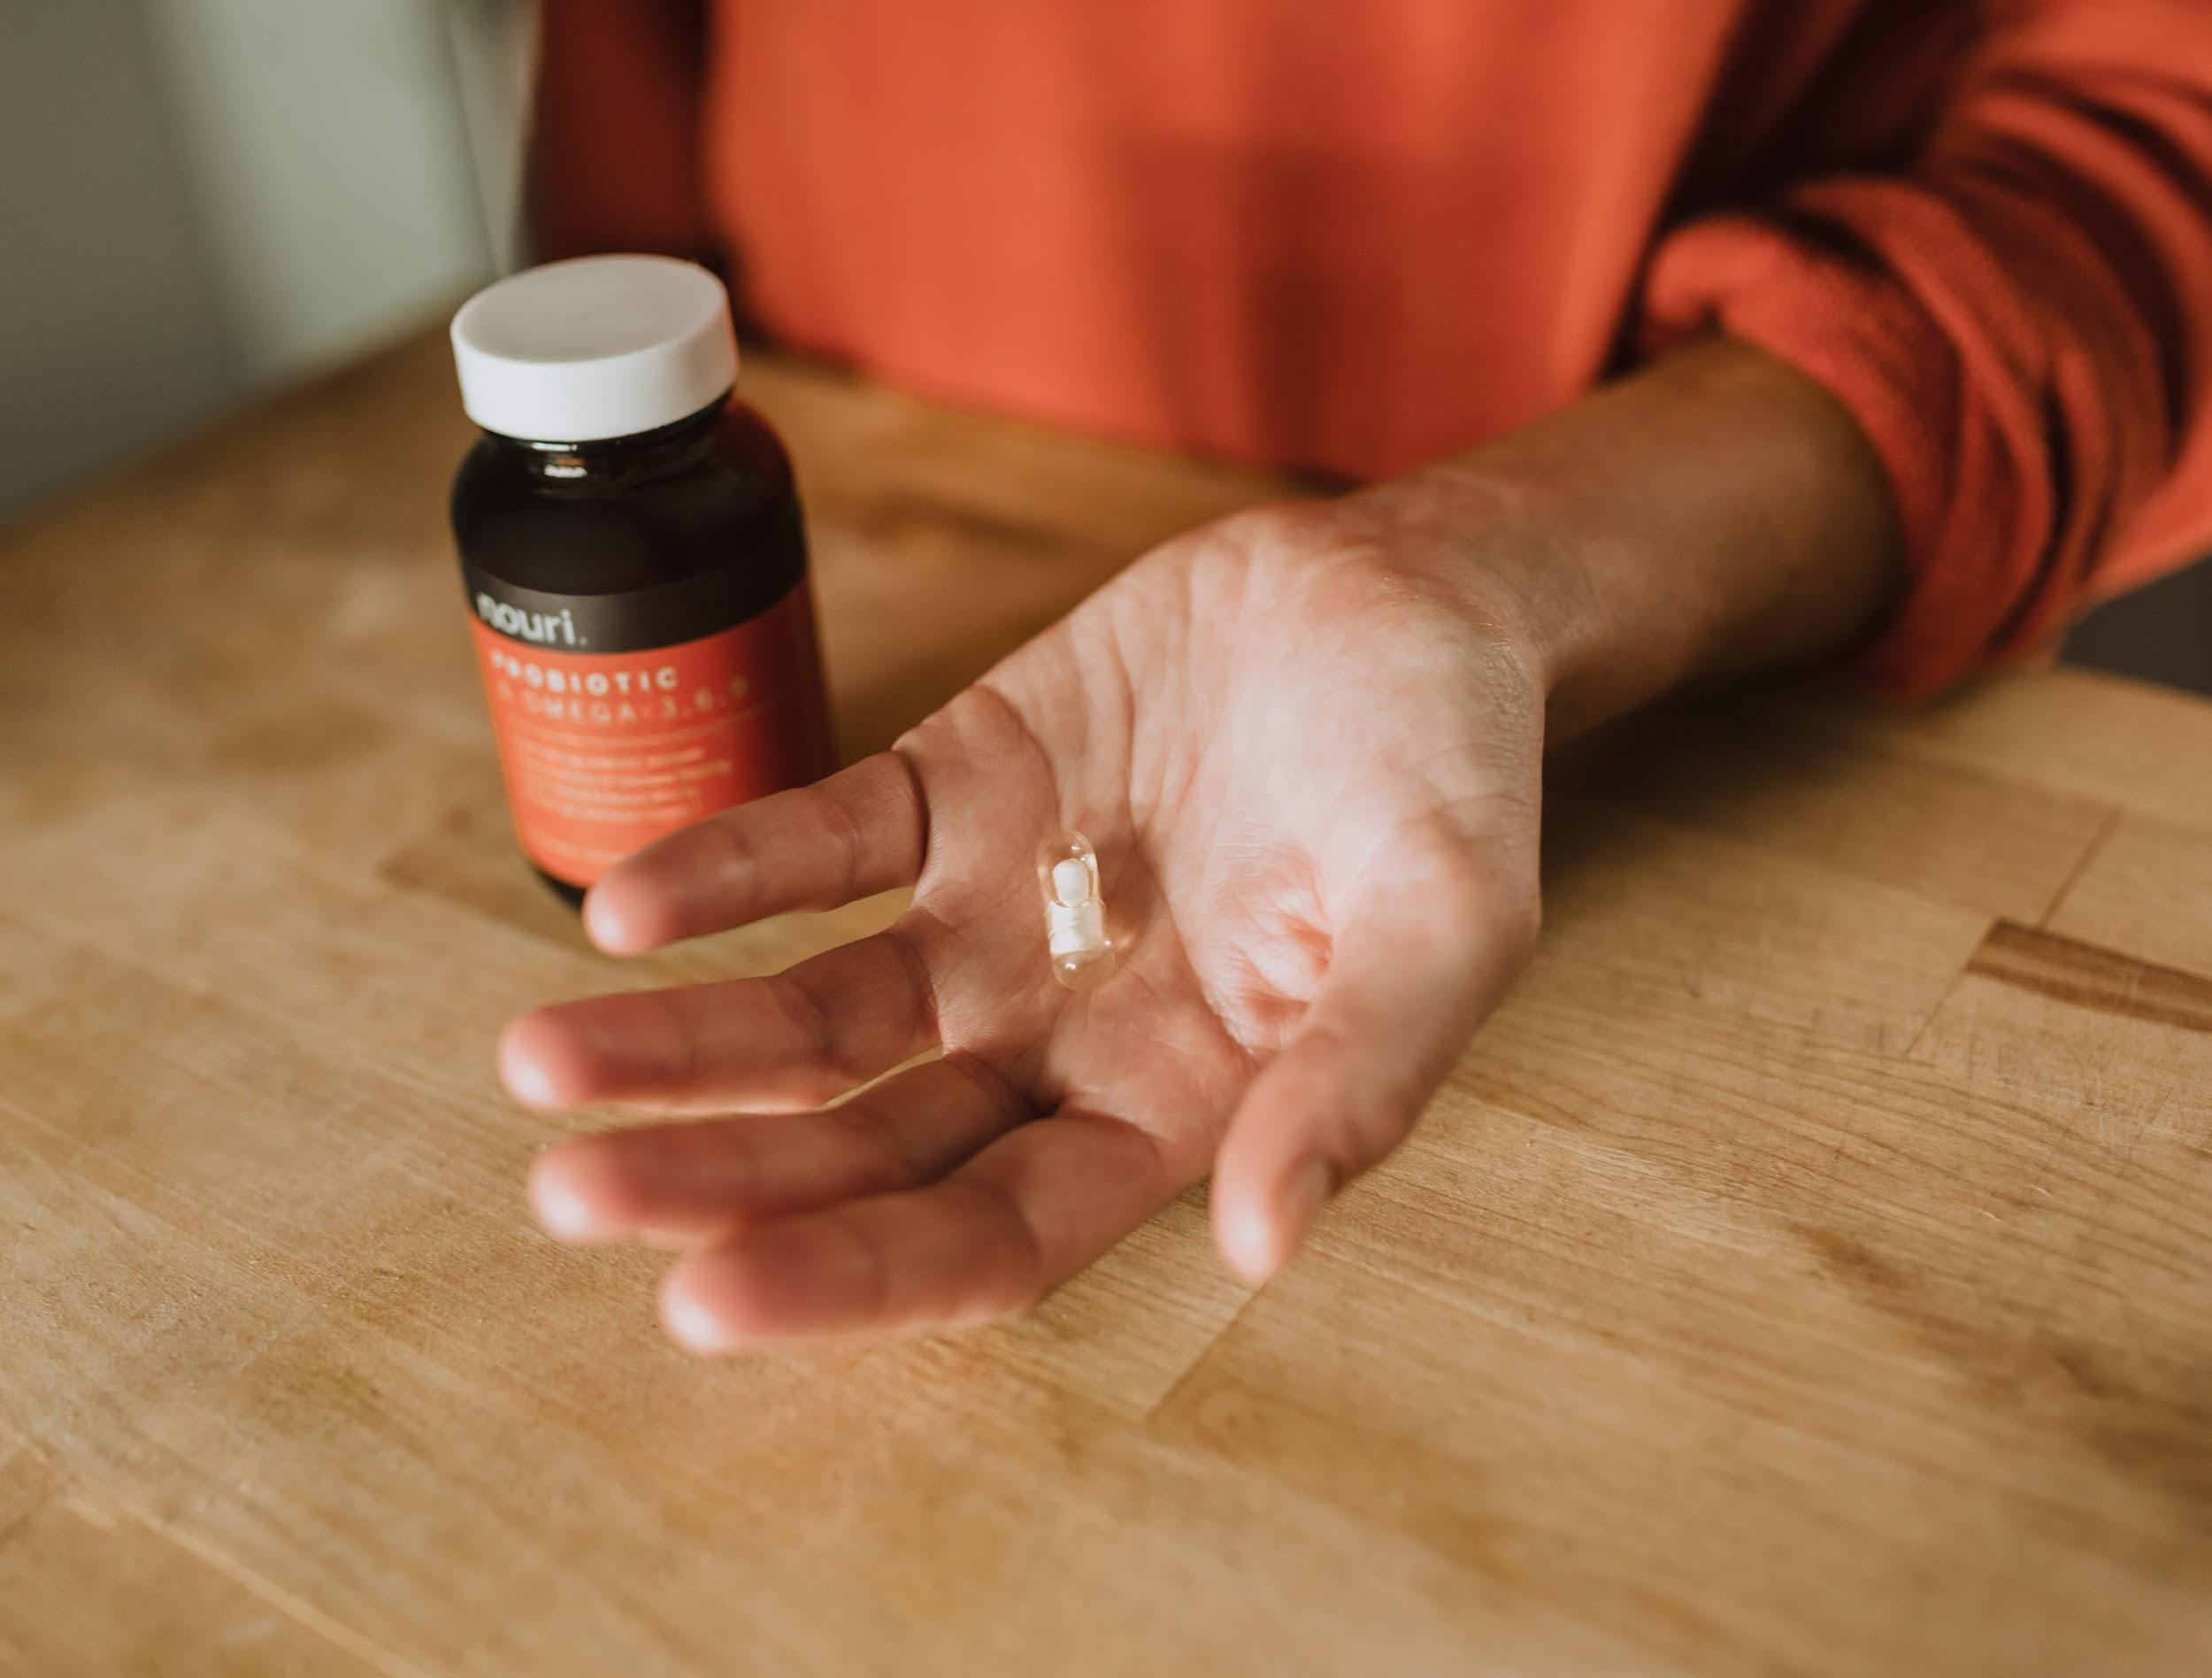 Woman holding probiotic capsule in her hand next to brand bottle over wooden counter.